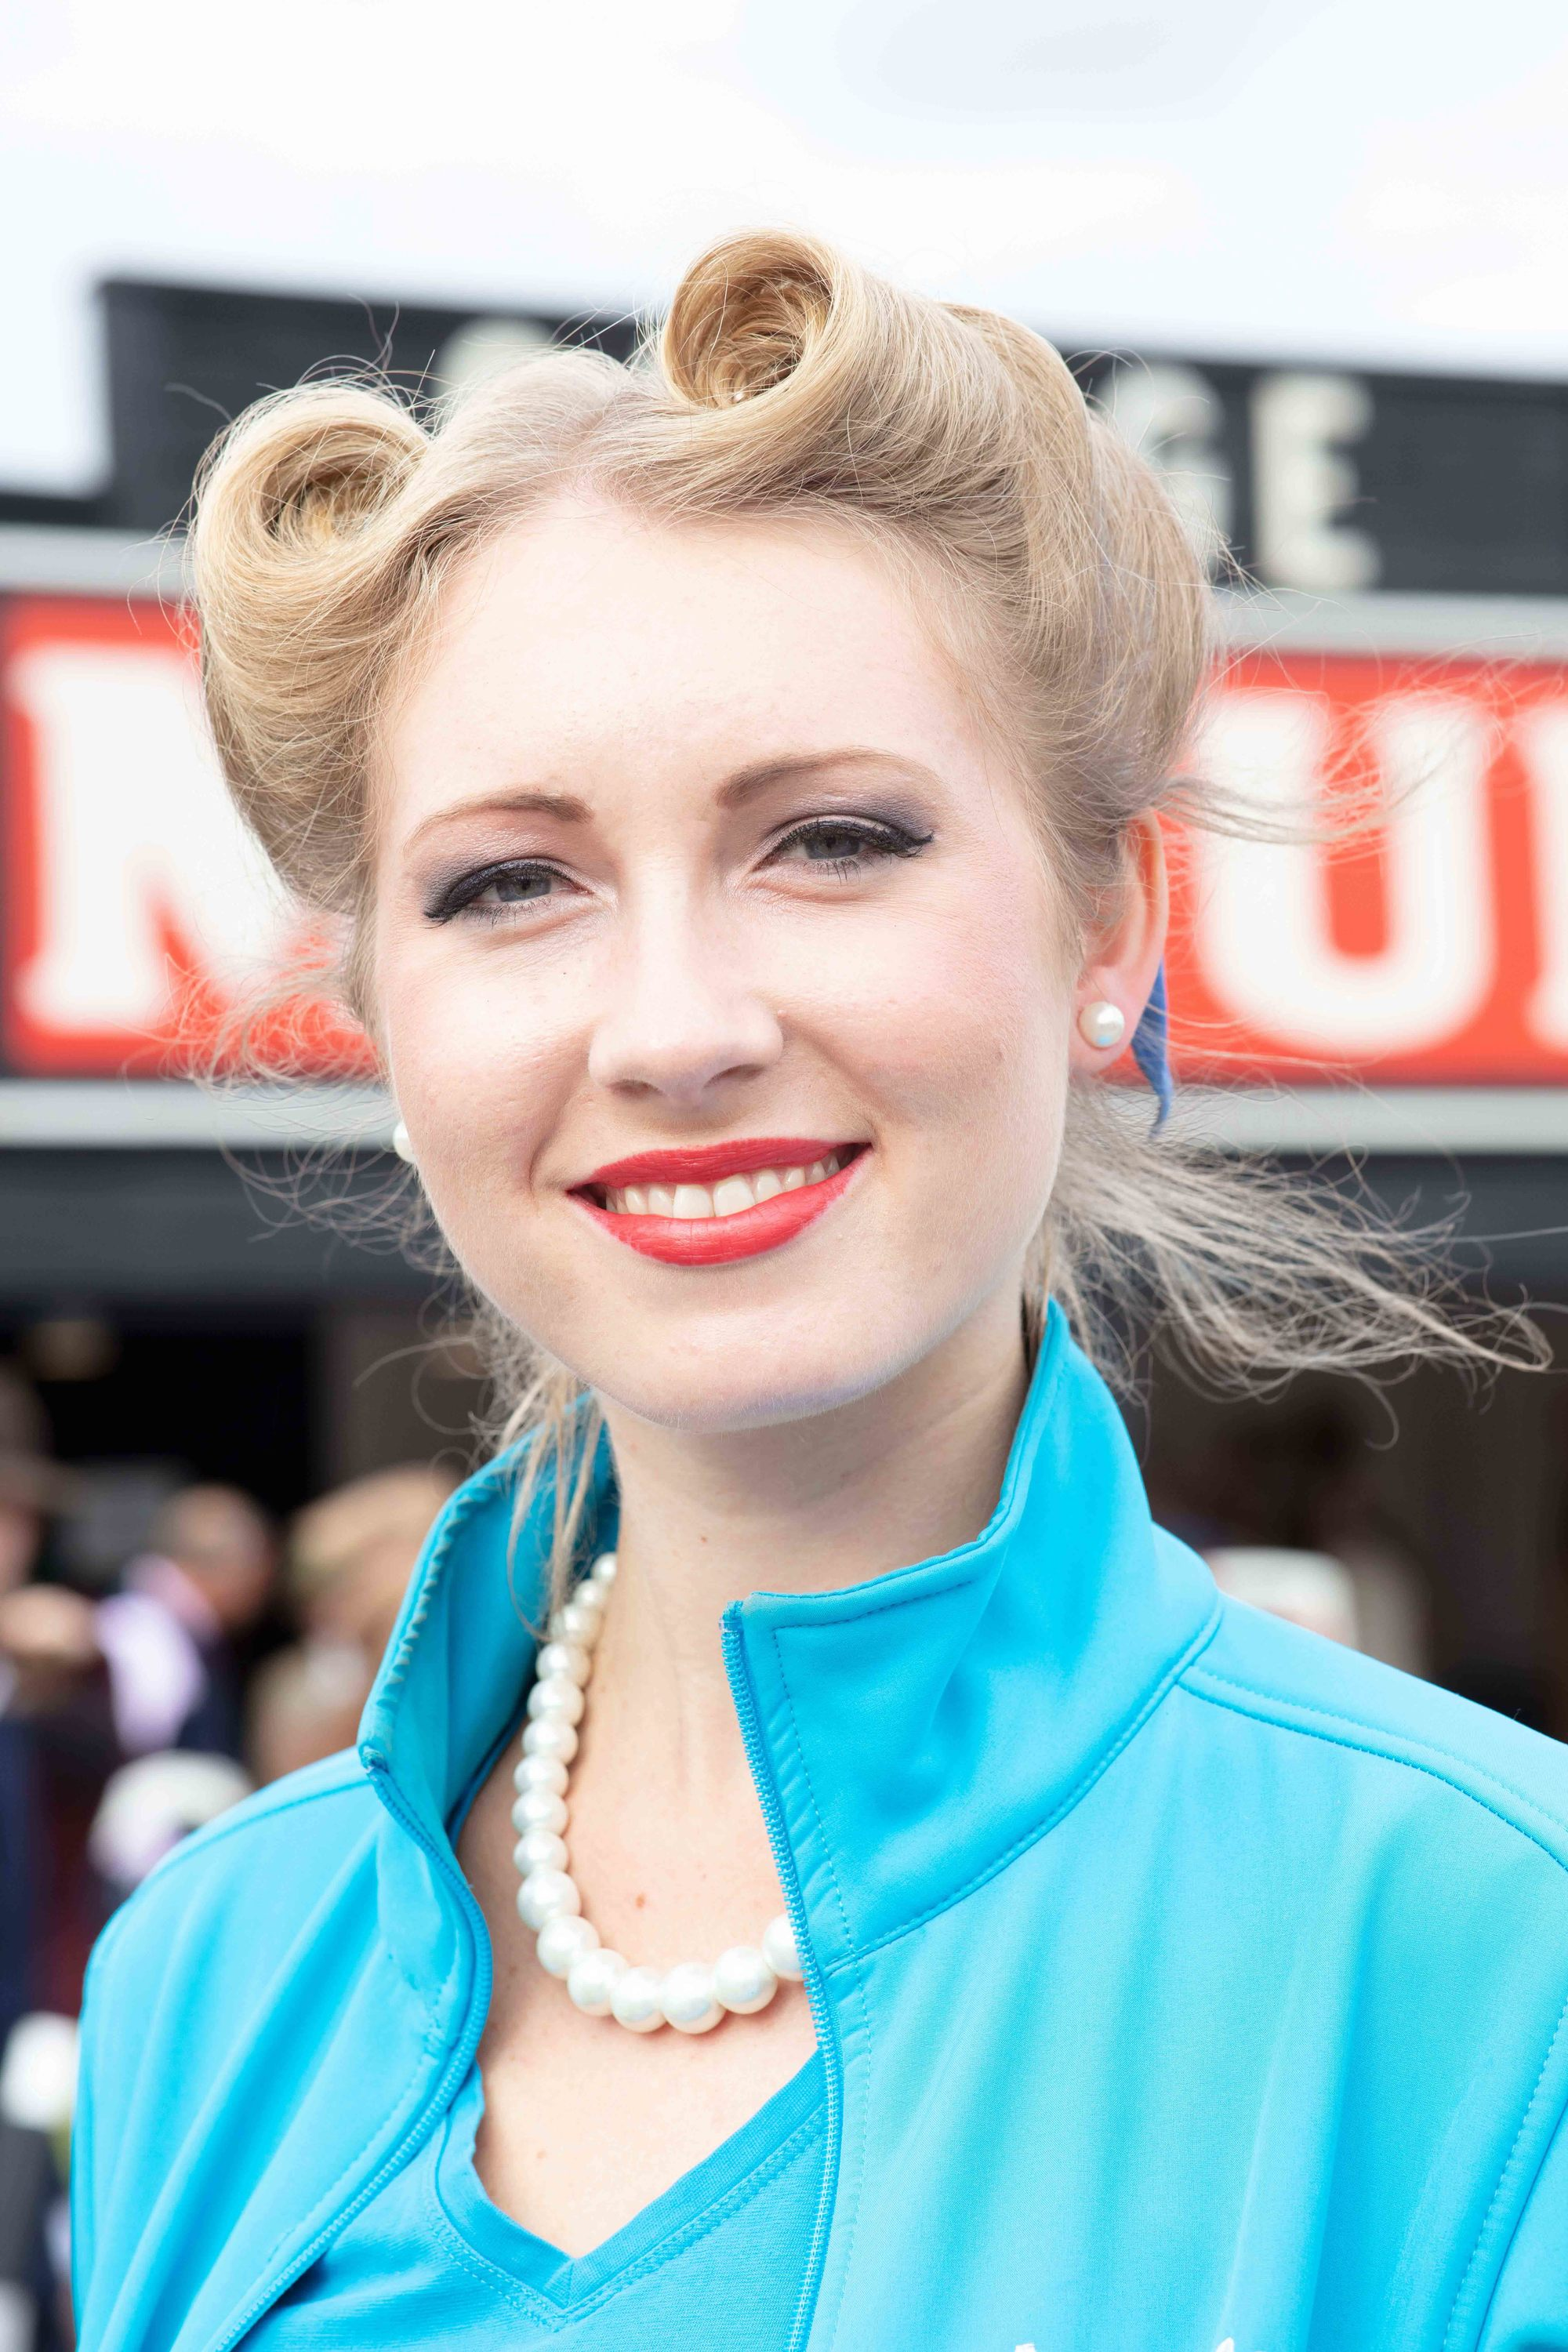 Pin up hairstyles: Blonde at Goodwood Revival with her hair in a victory rolls updo